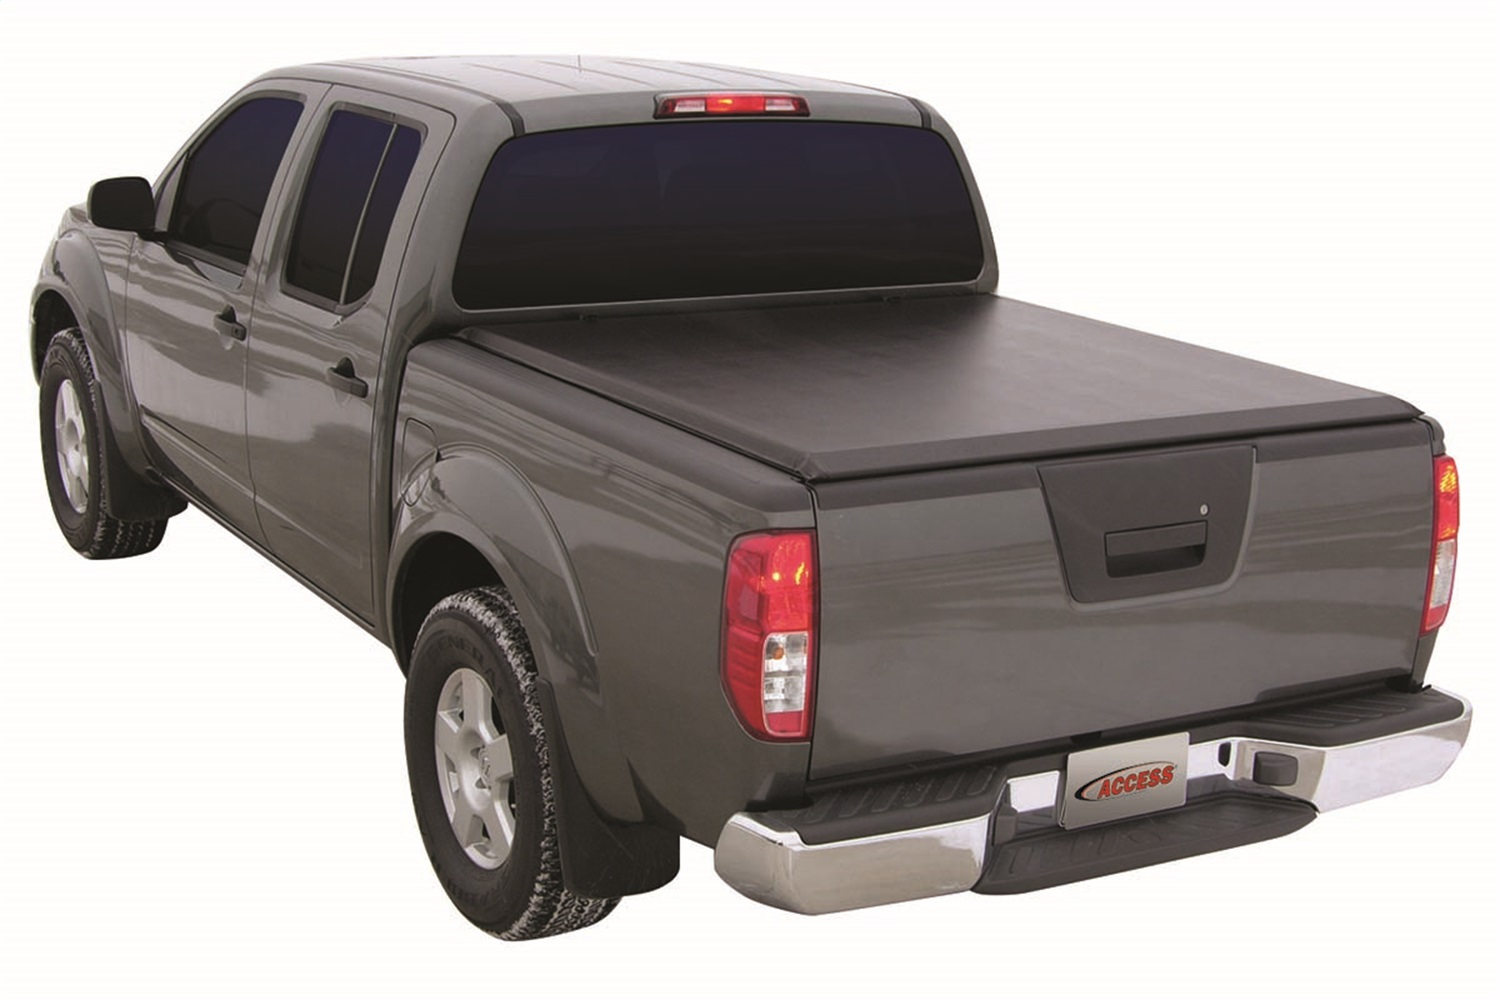 Access Cover 13179 ACCESS Original Roll-Up Cover Fits 05-20 Equator Frontier